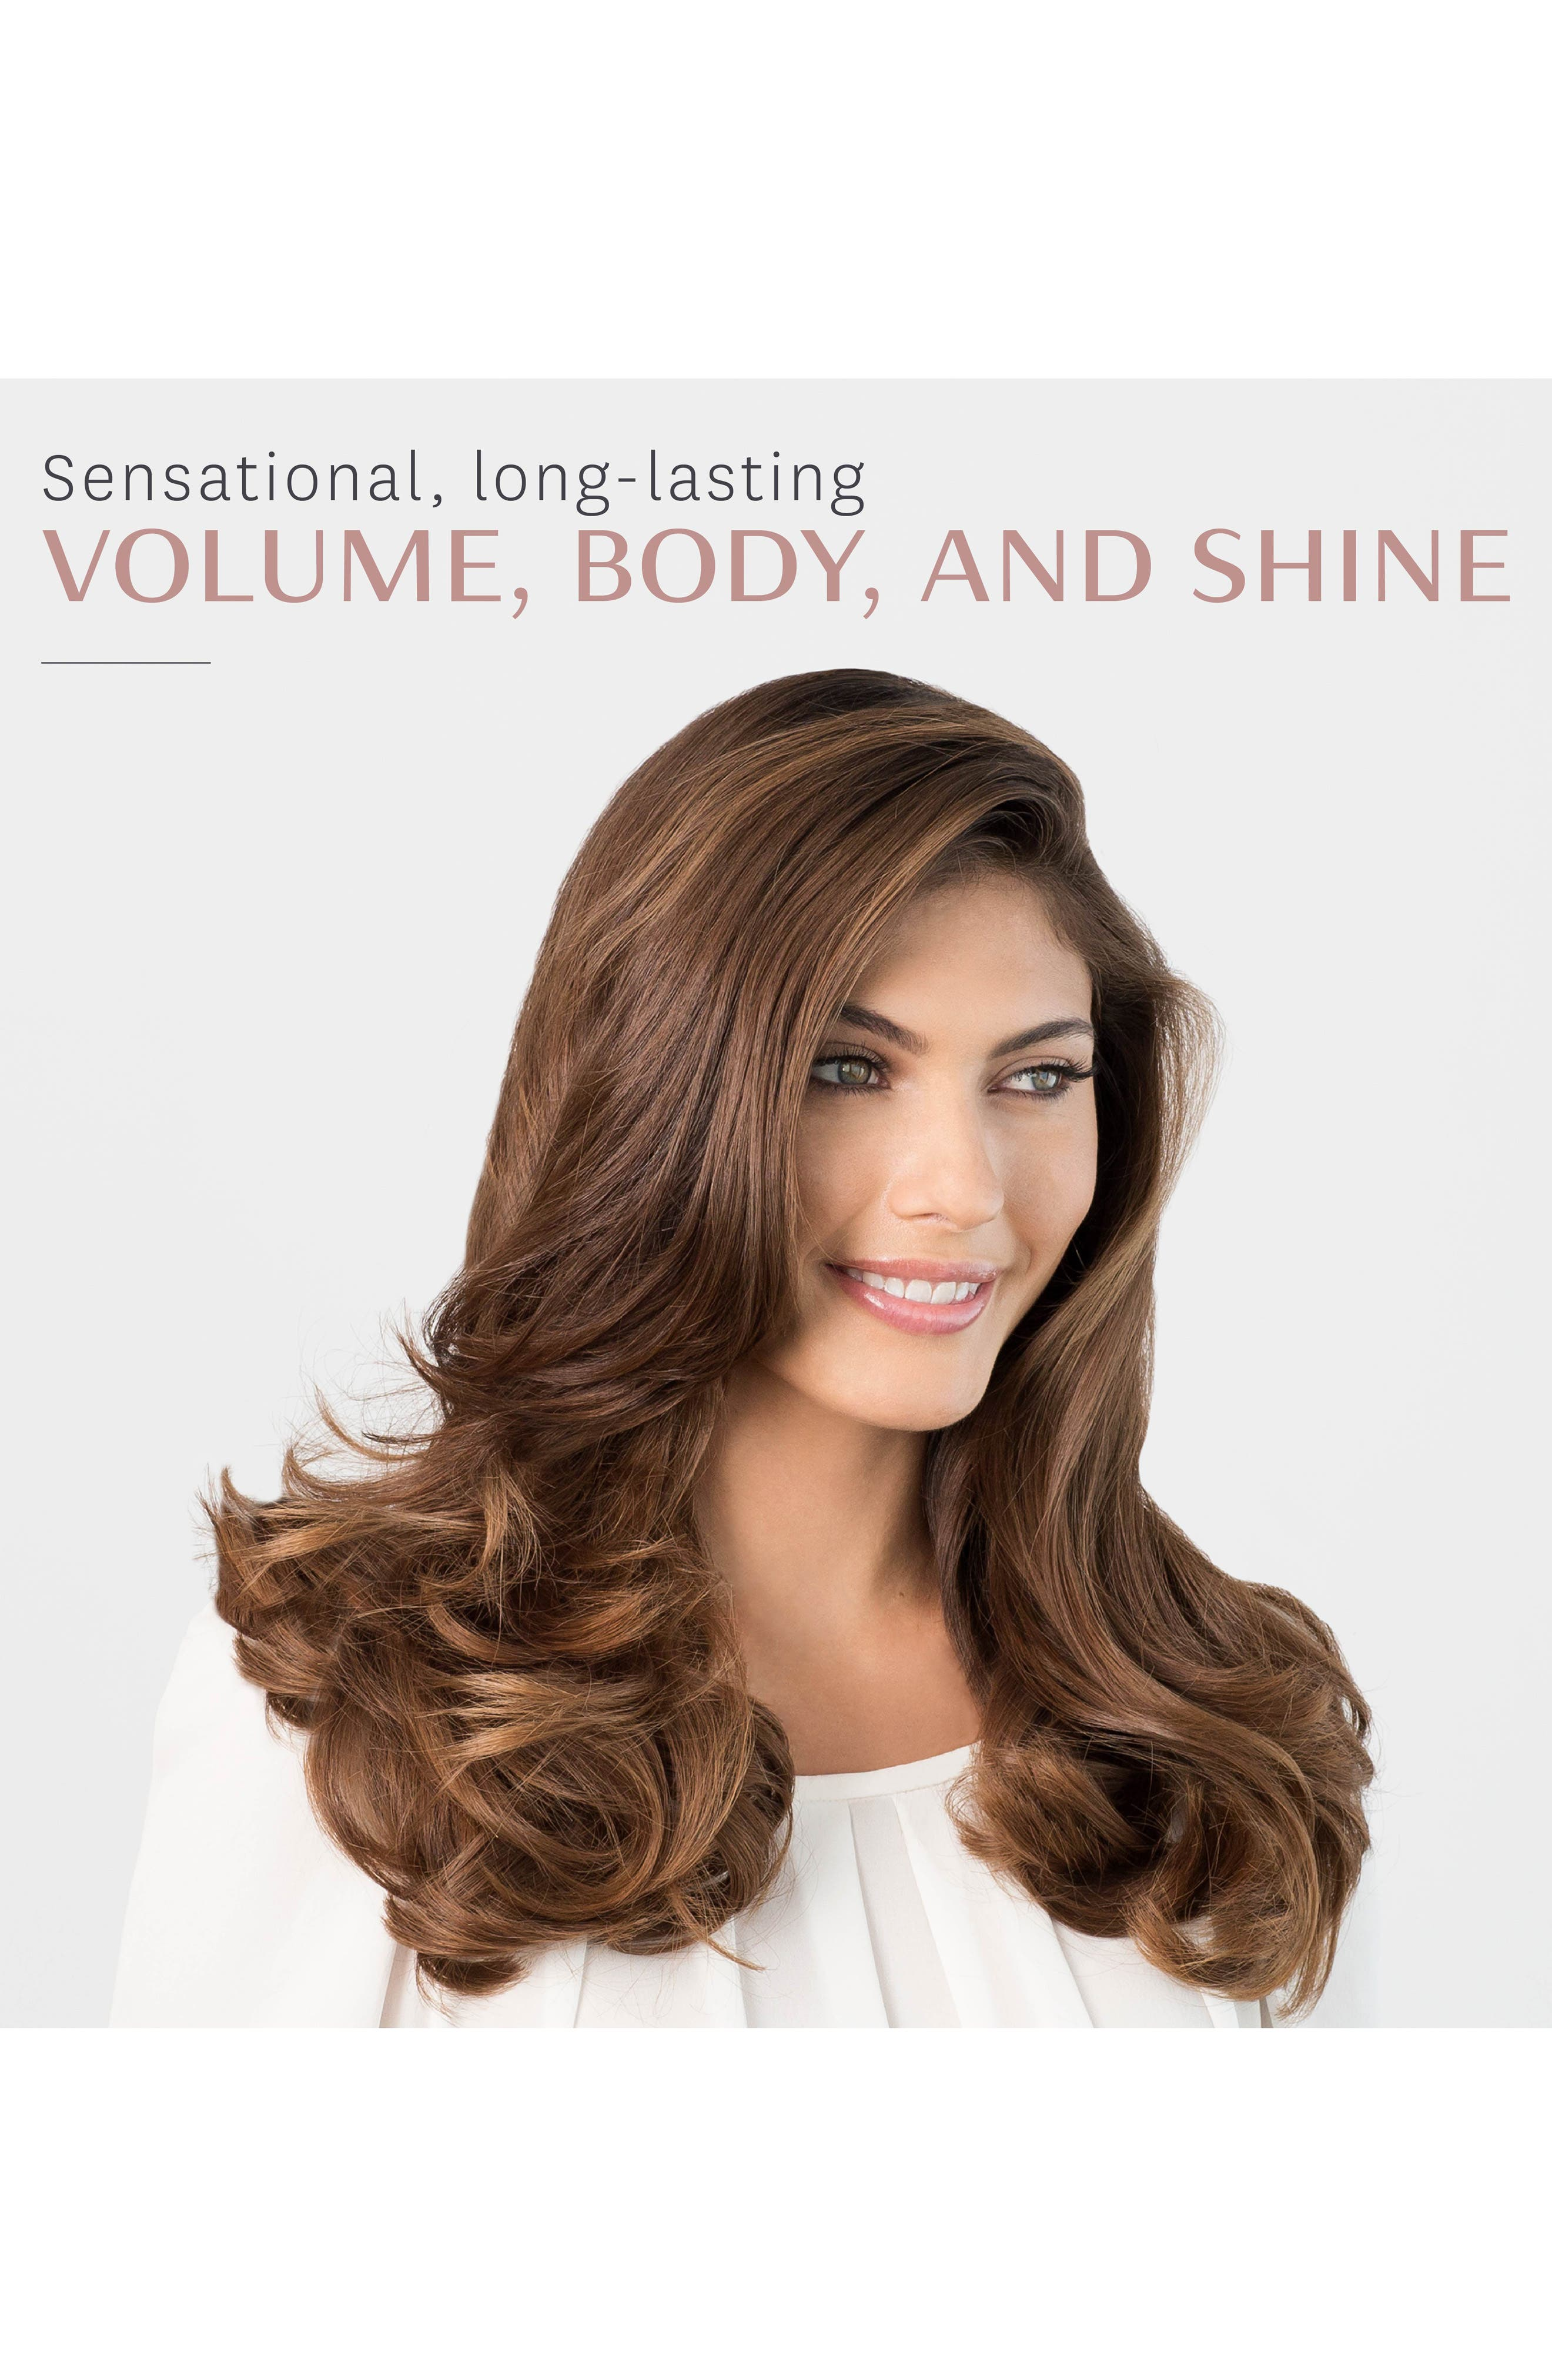 T3, Volumizing Hot Rollers LUXE for Volume, Body and Shine, Alternate thumbnail 3, color, NO COLOR